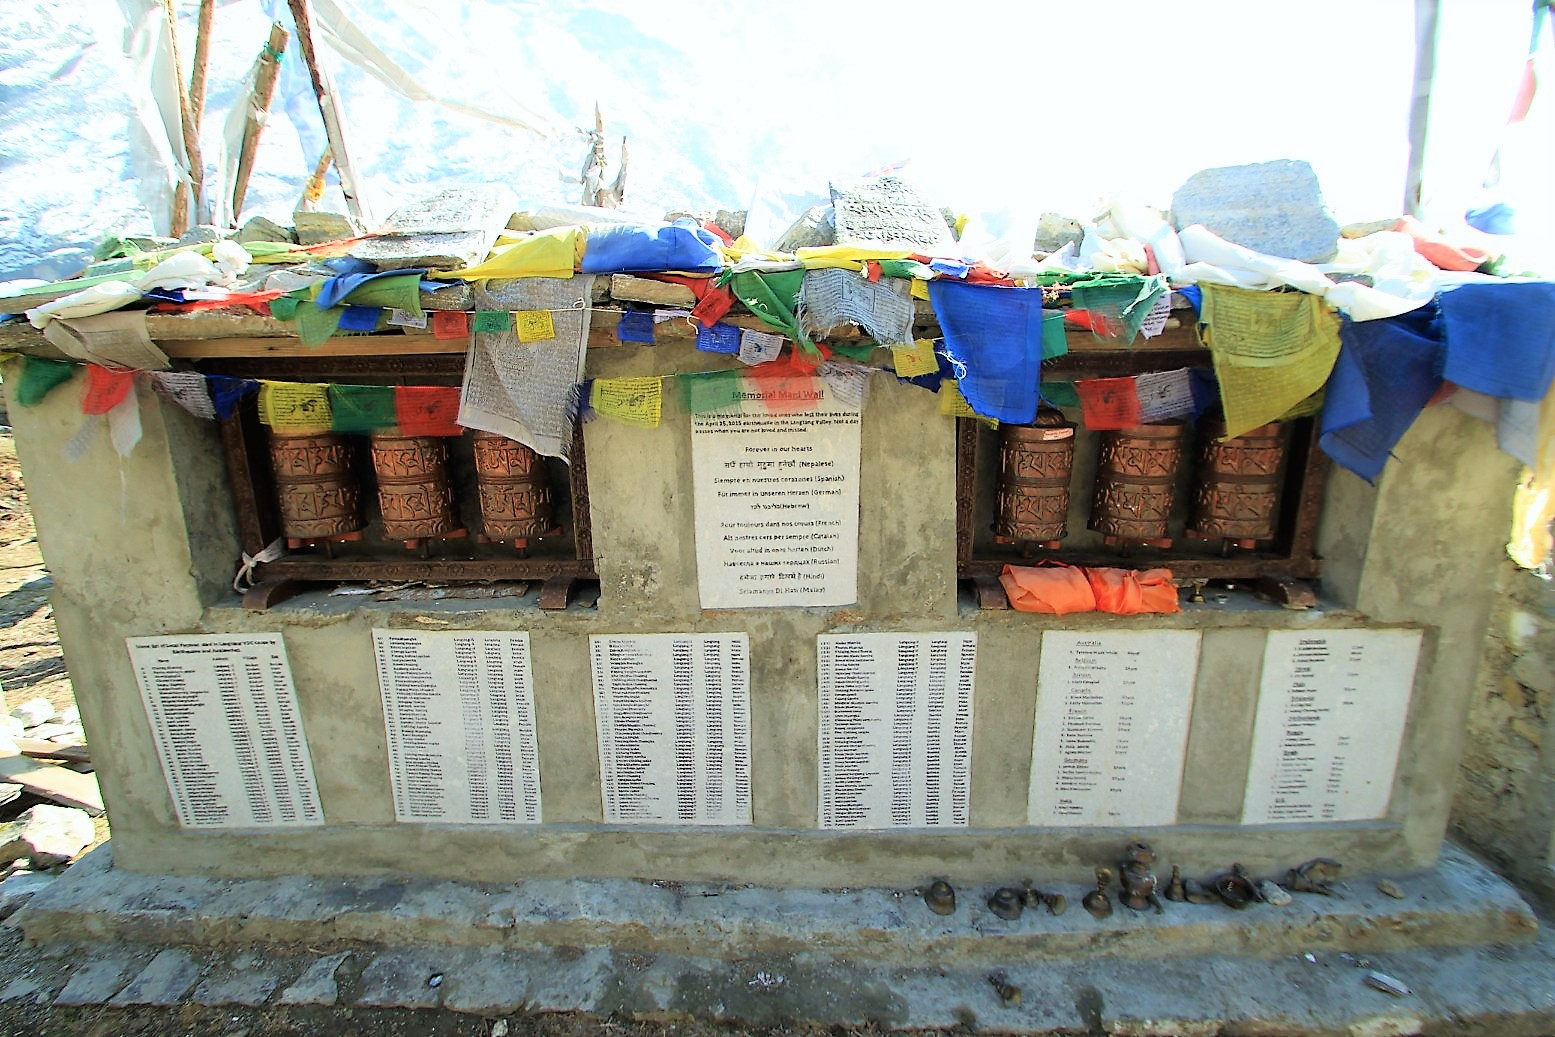 Langtang Earthquake Memorial